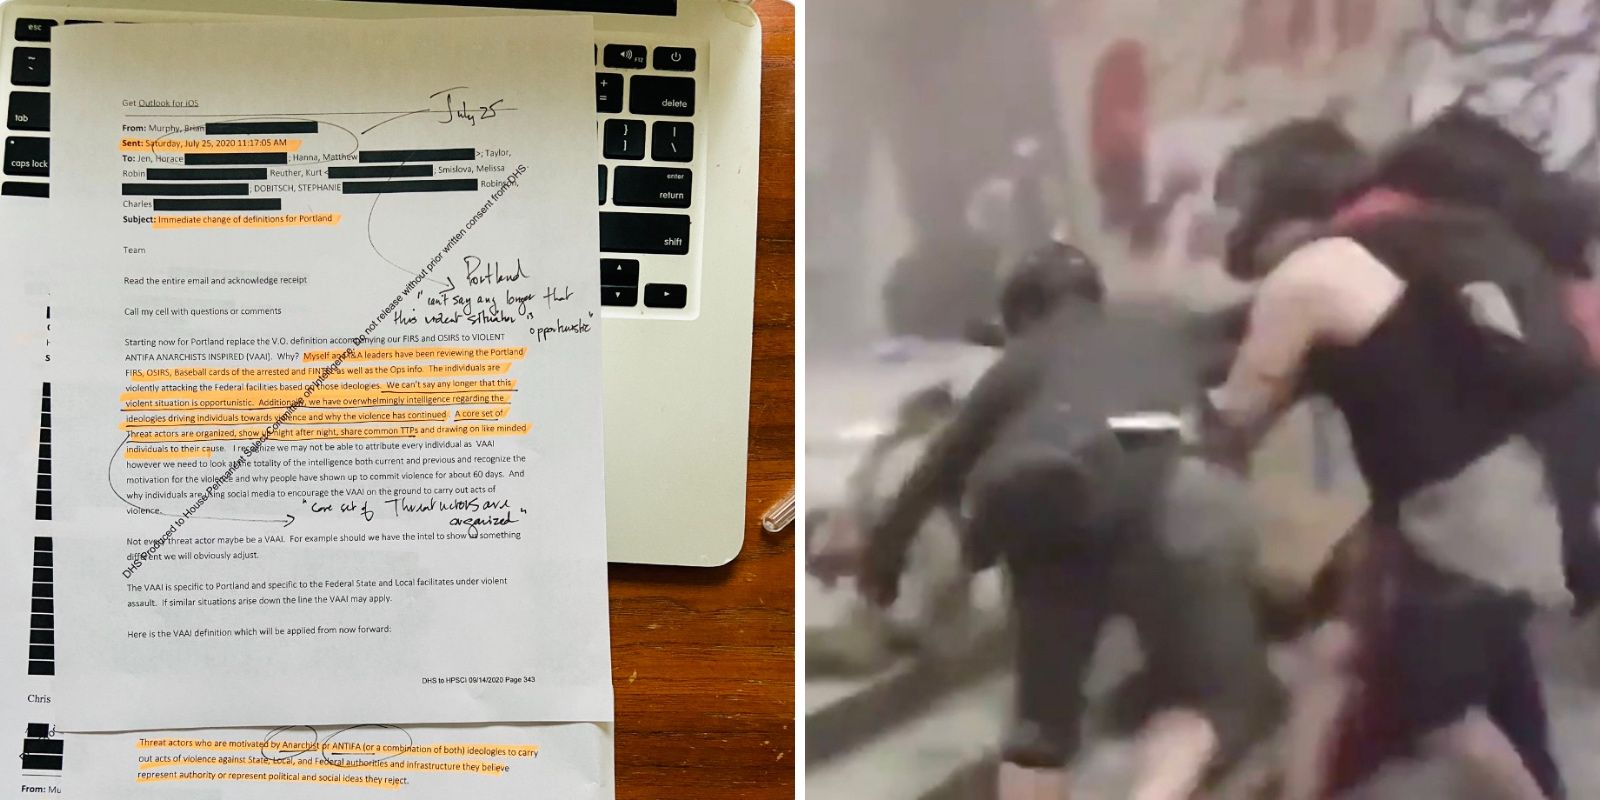 BREAKING: DHS leaked email confirms Antifa is an organized group